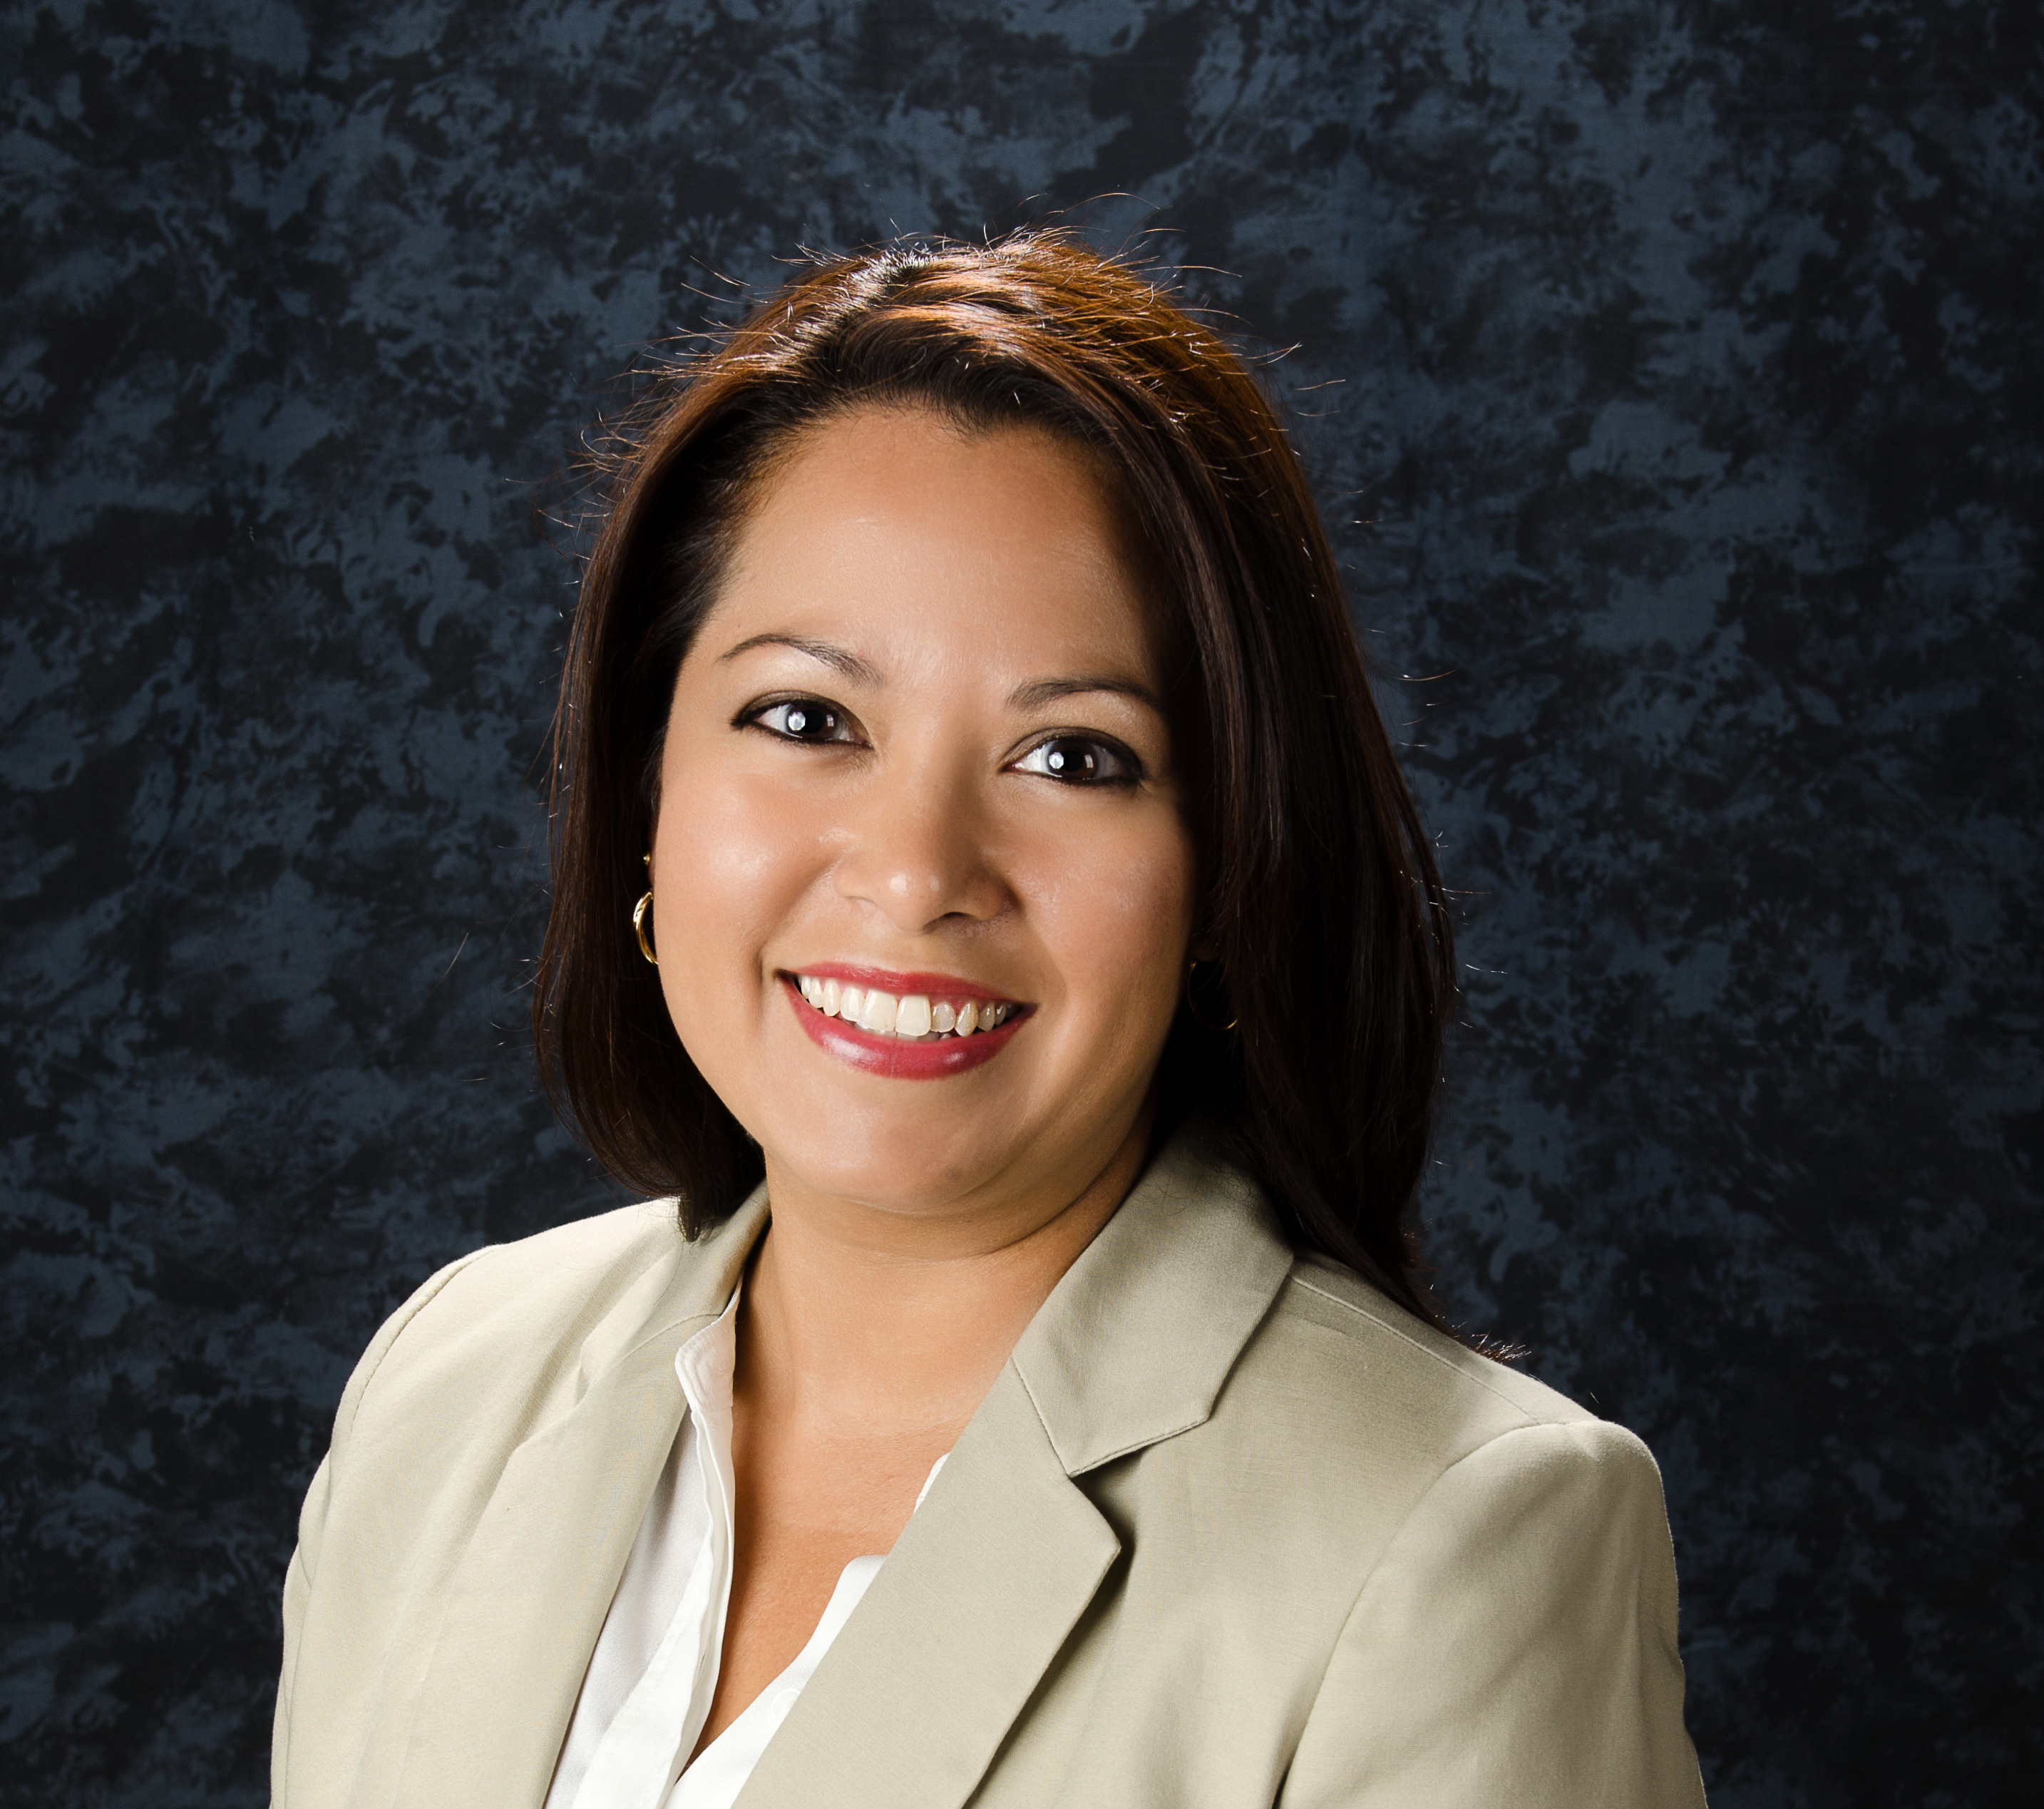 Board Approves Arellano as Bowie Principal